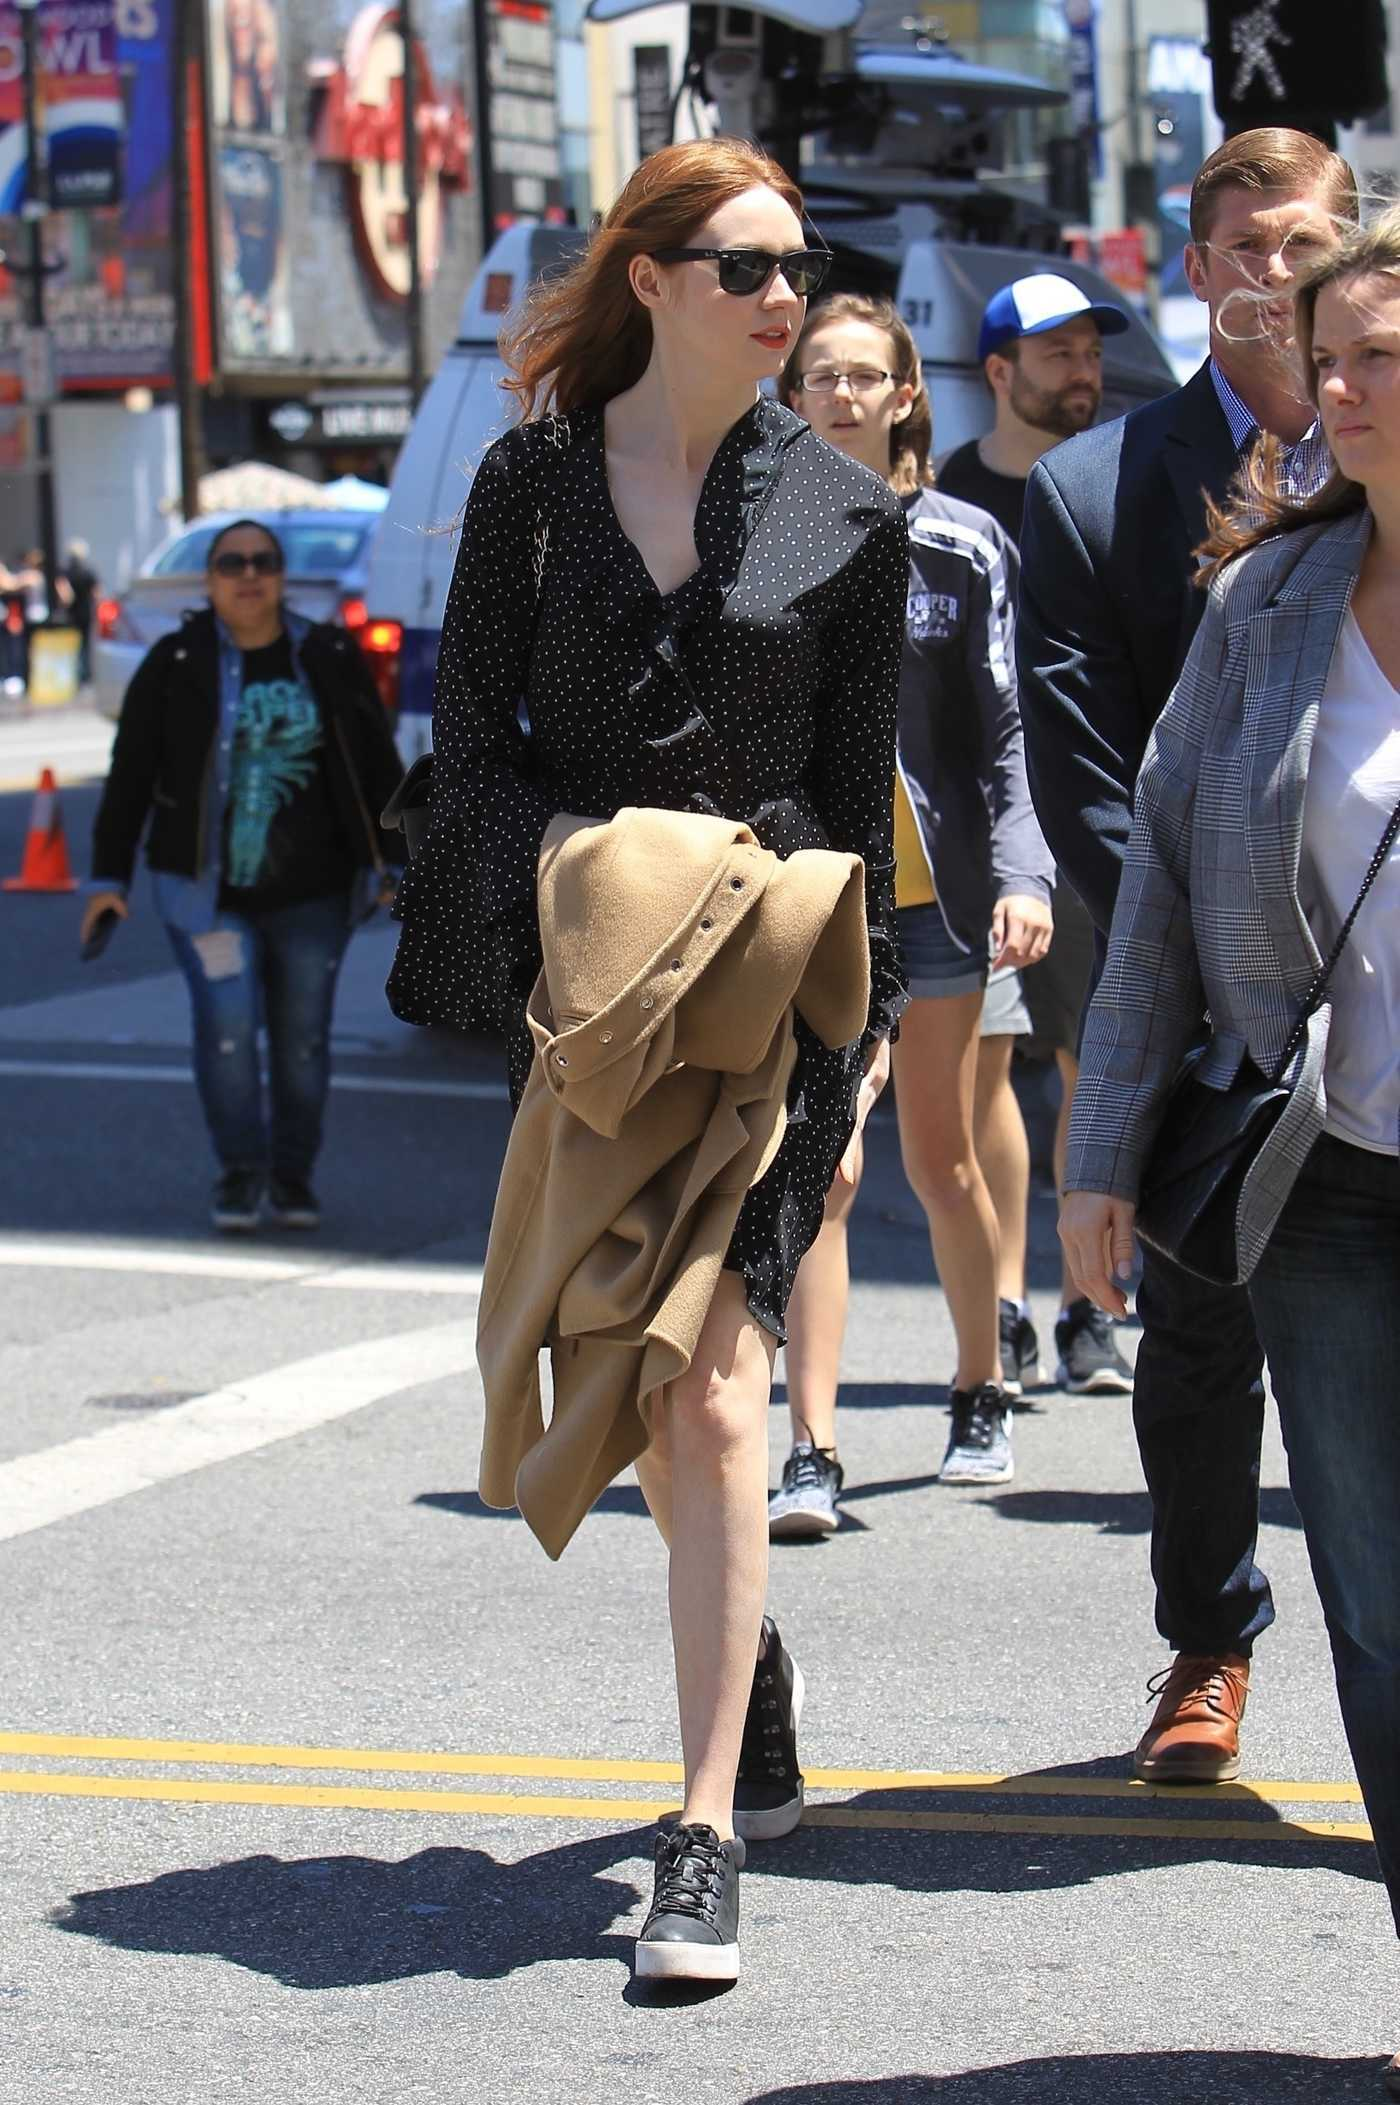 Karen Gillan Was Spotted on the Hollywood Walk of Fame in Los Angeles 05/03/2018